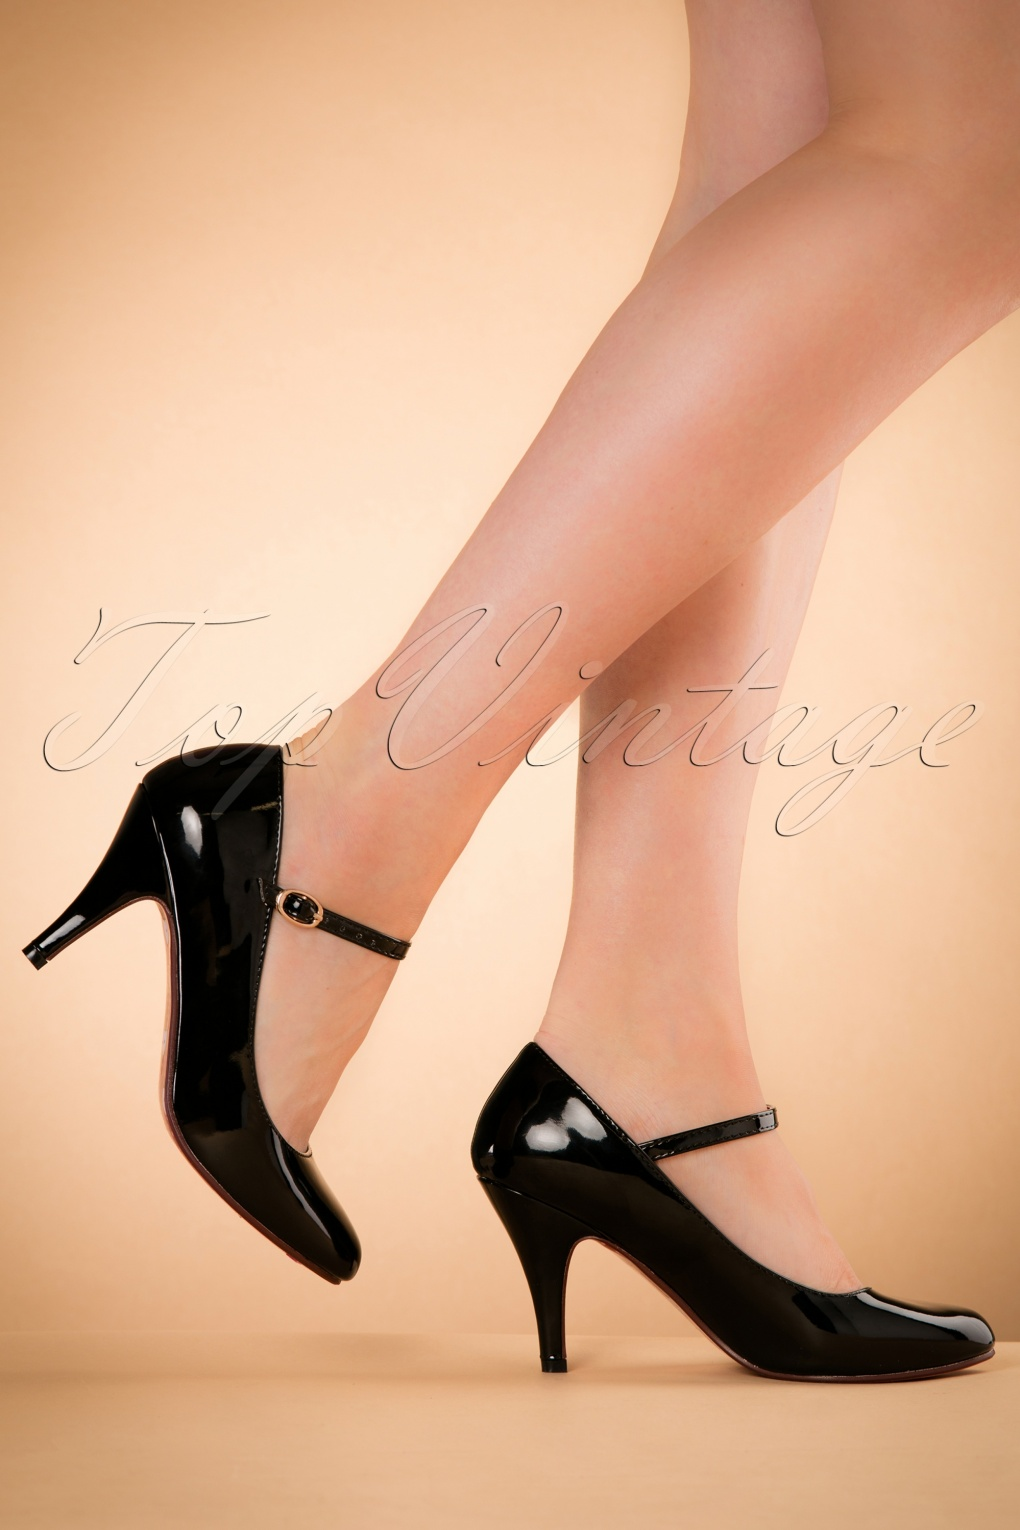 Vintage Style Shoes, Vintage Inspired Shoes 60s Jean Jeanie Lacquer Pumps in Black £48.06 AT vintagedancer.com